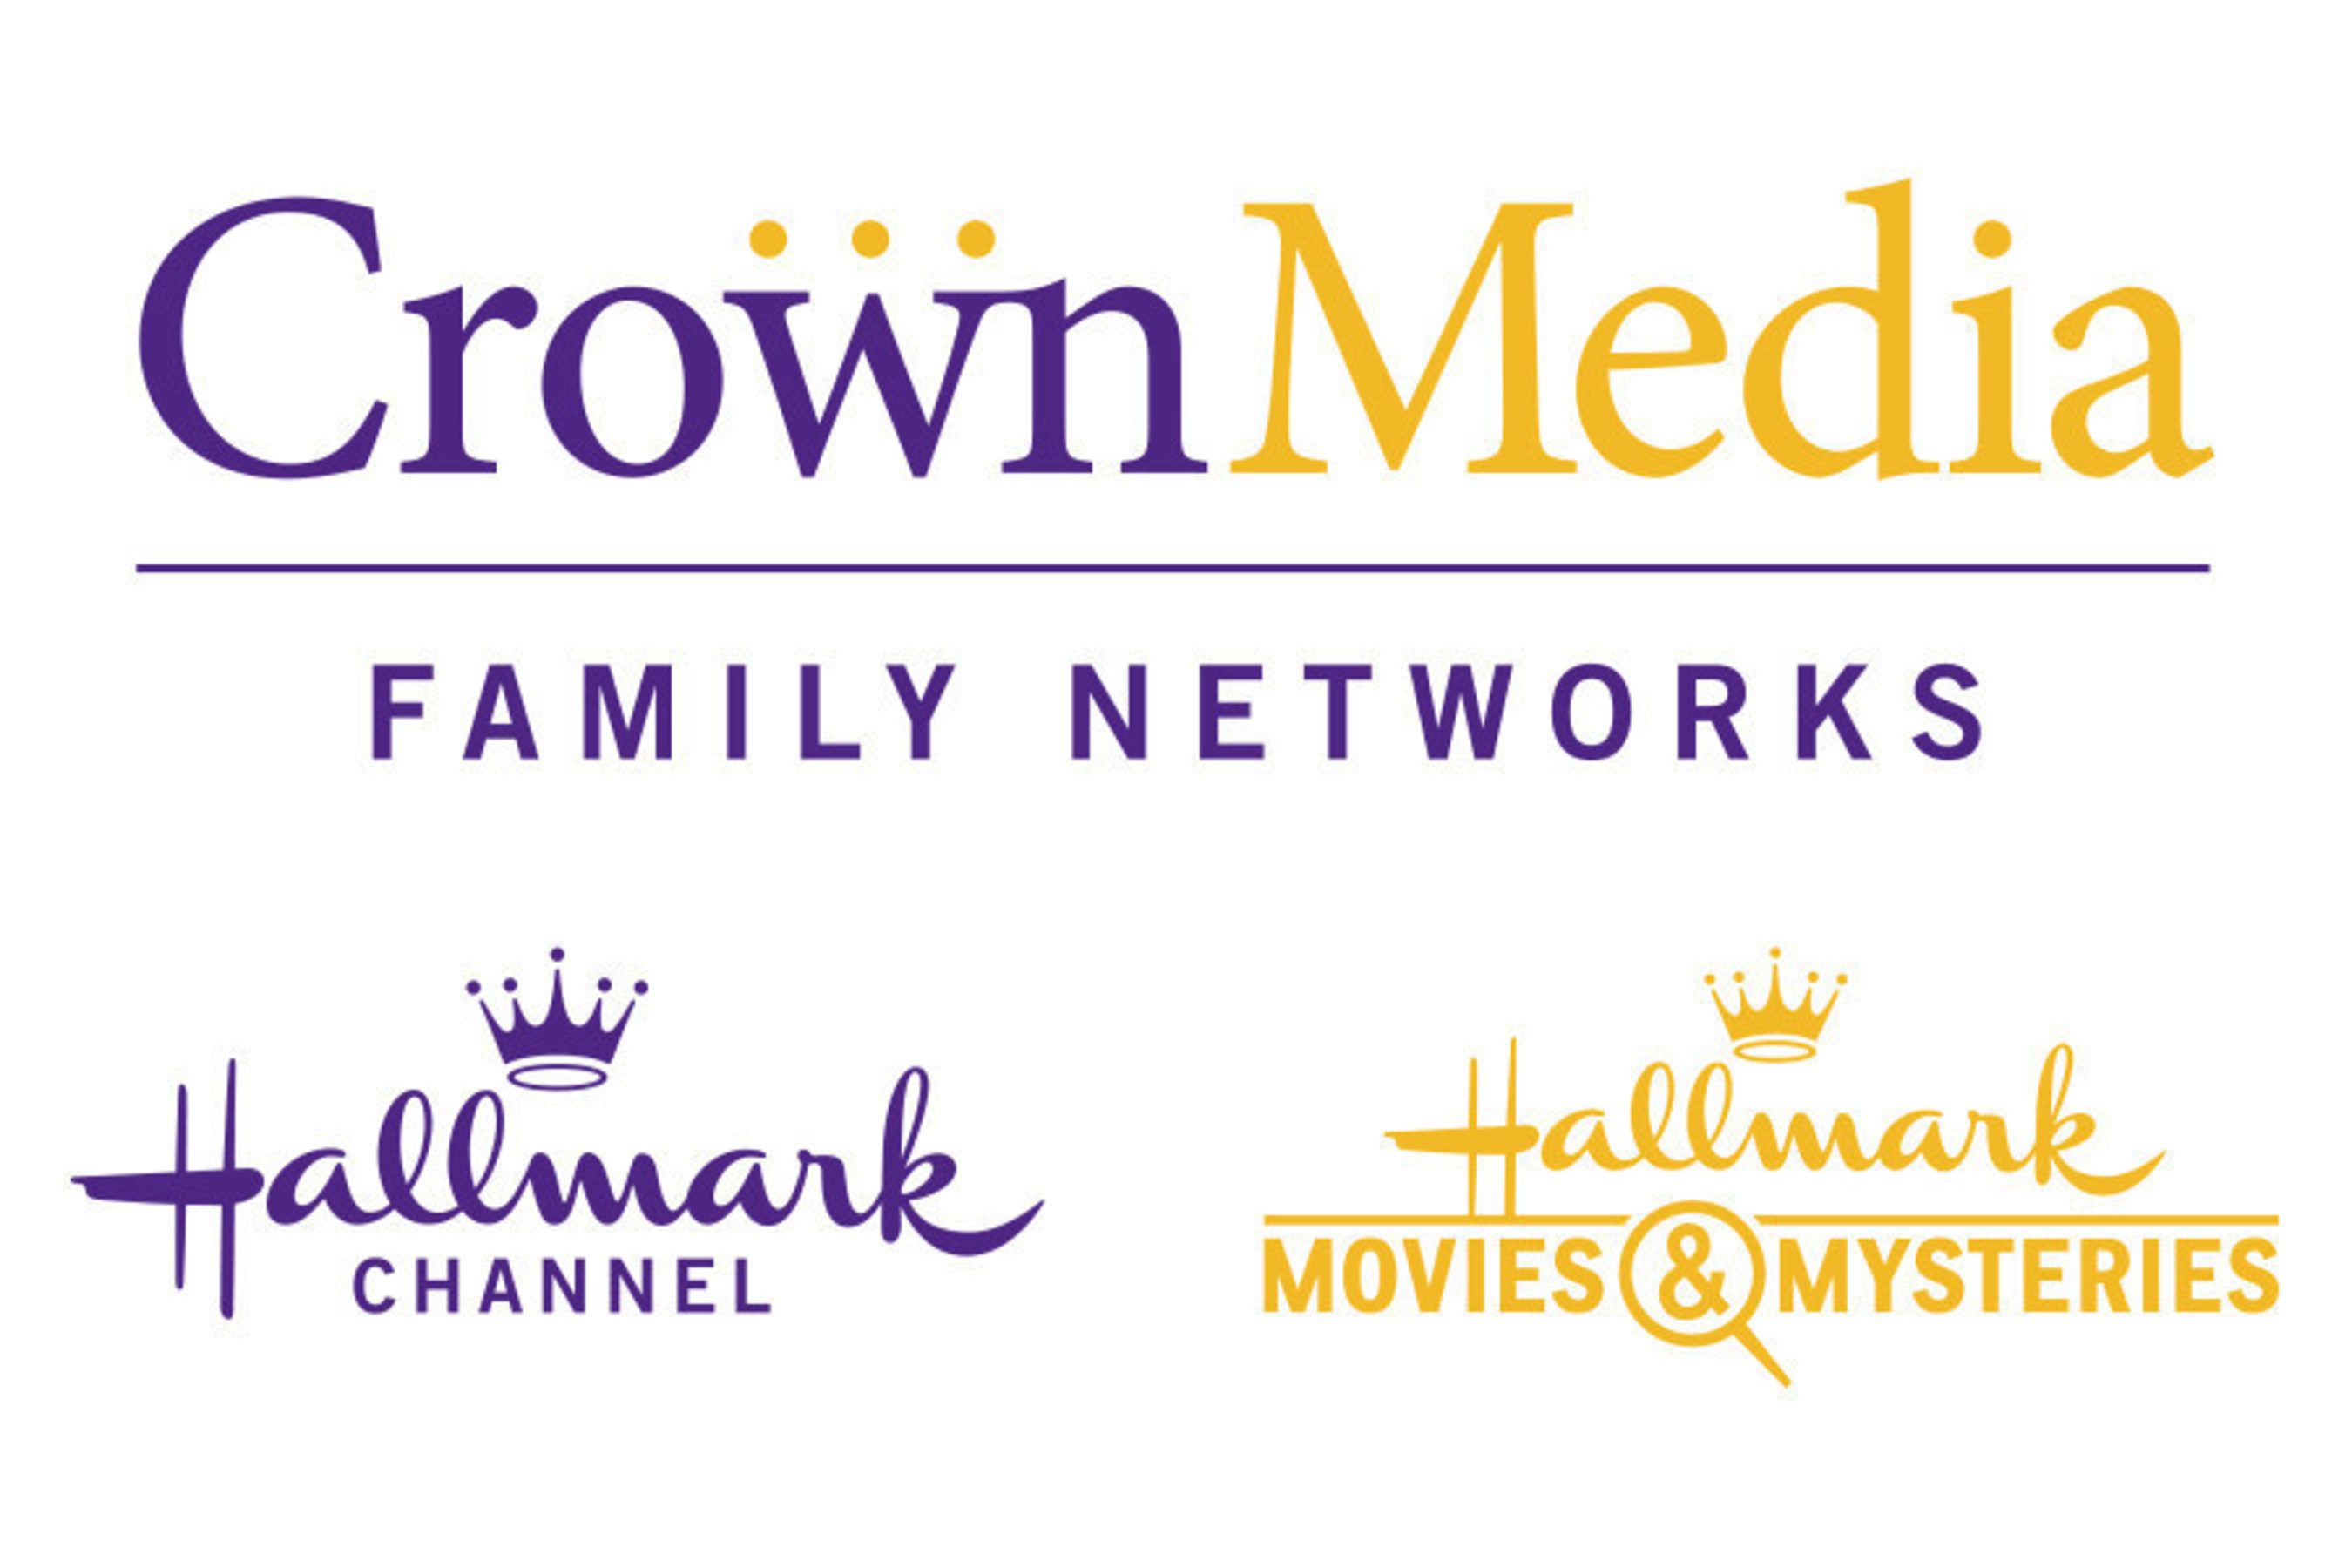 crown media family networks and at t u verse tv to launch